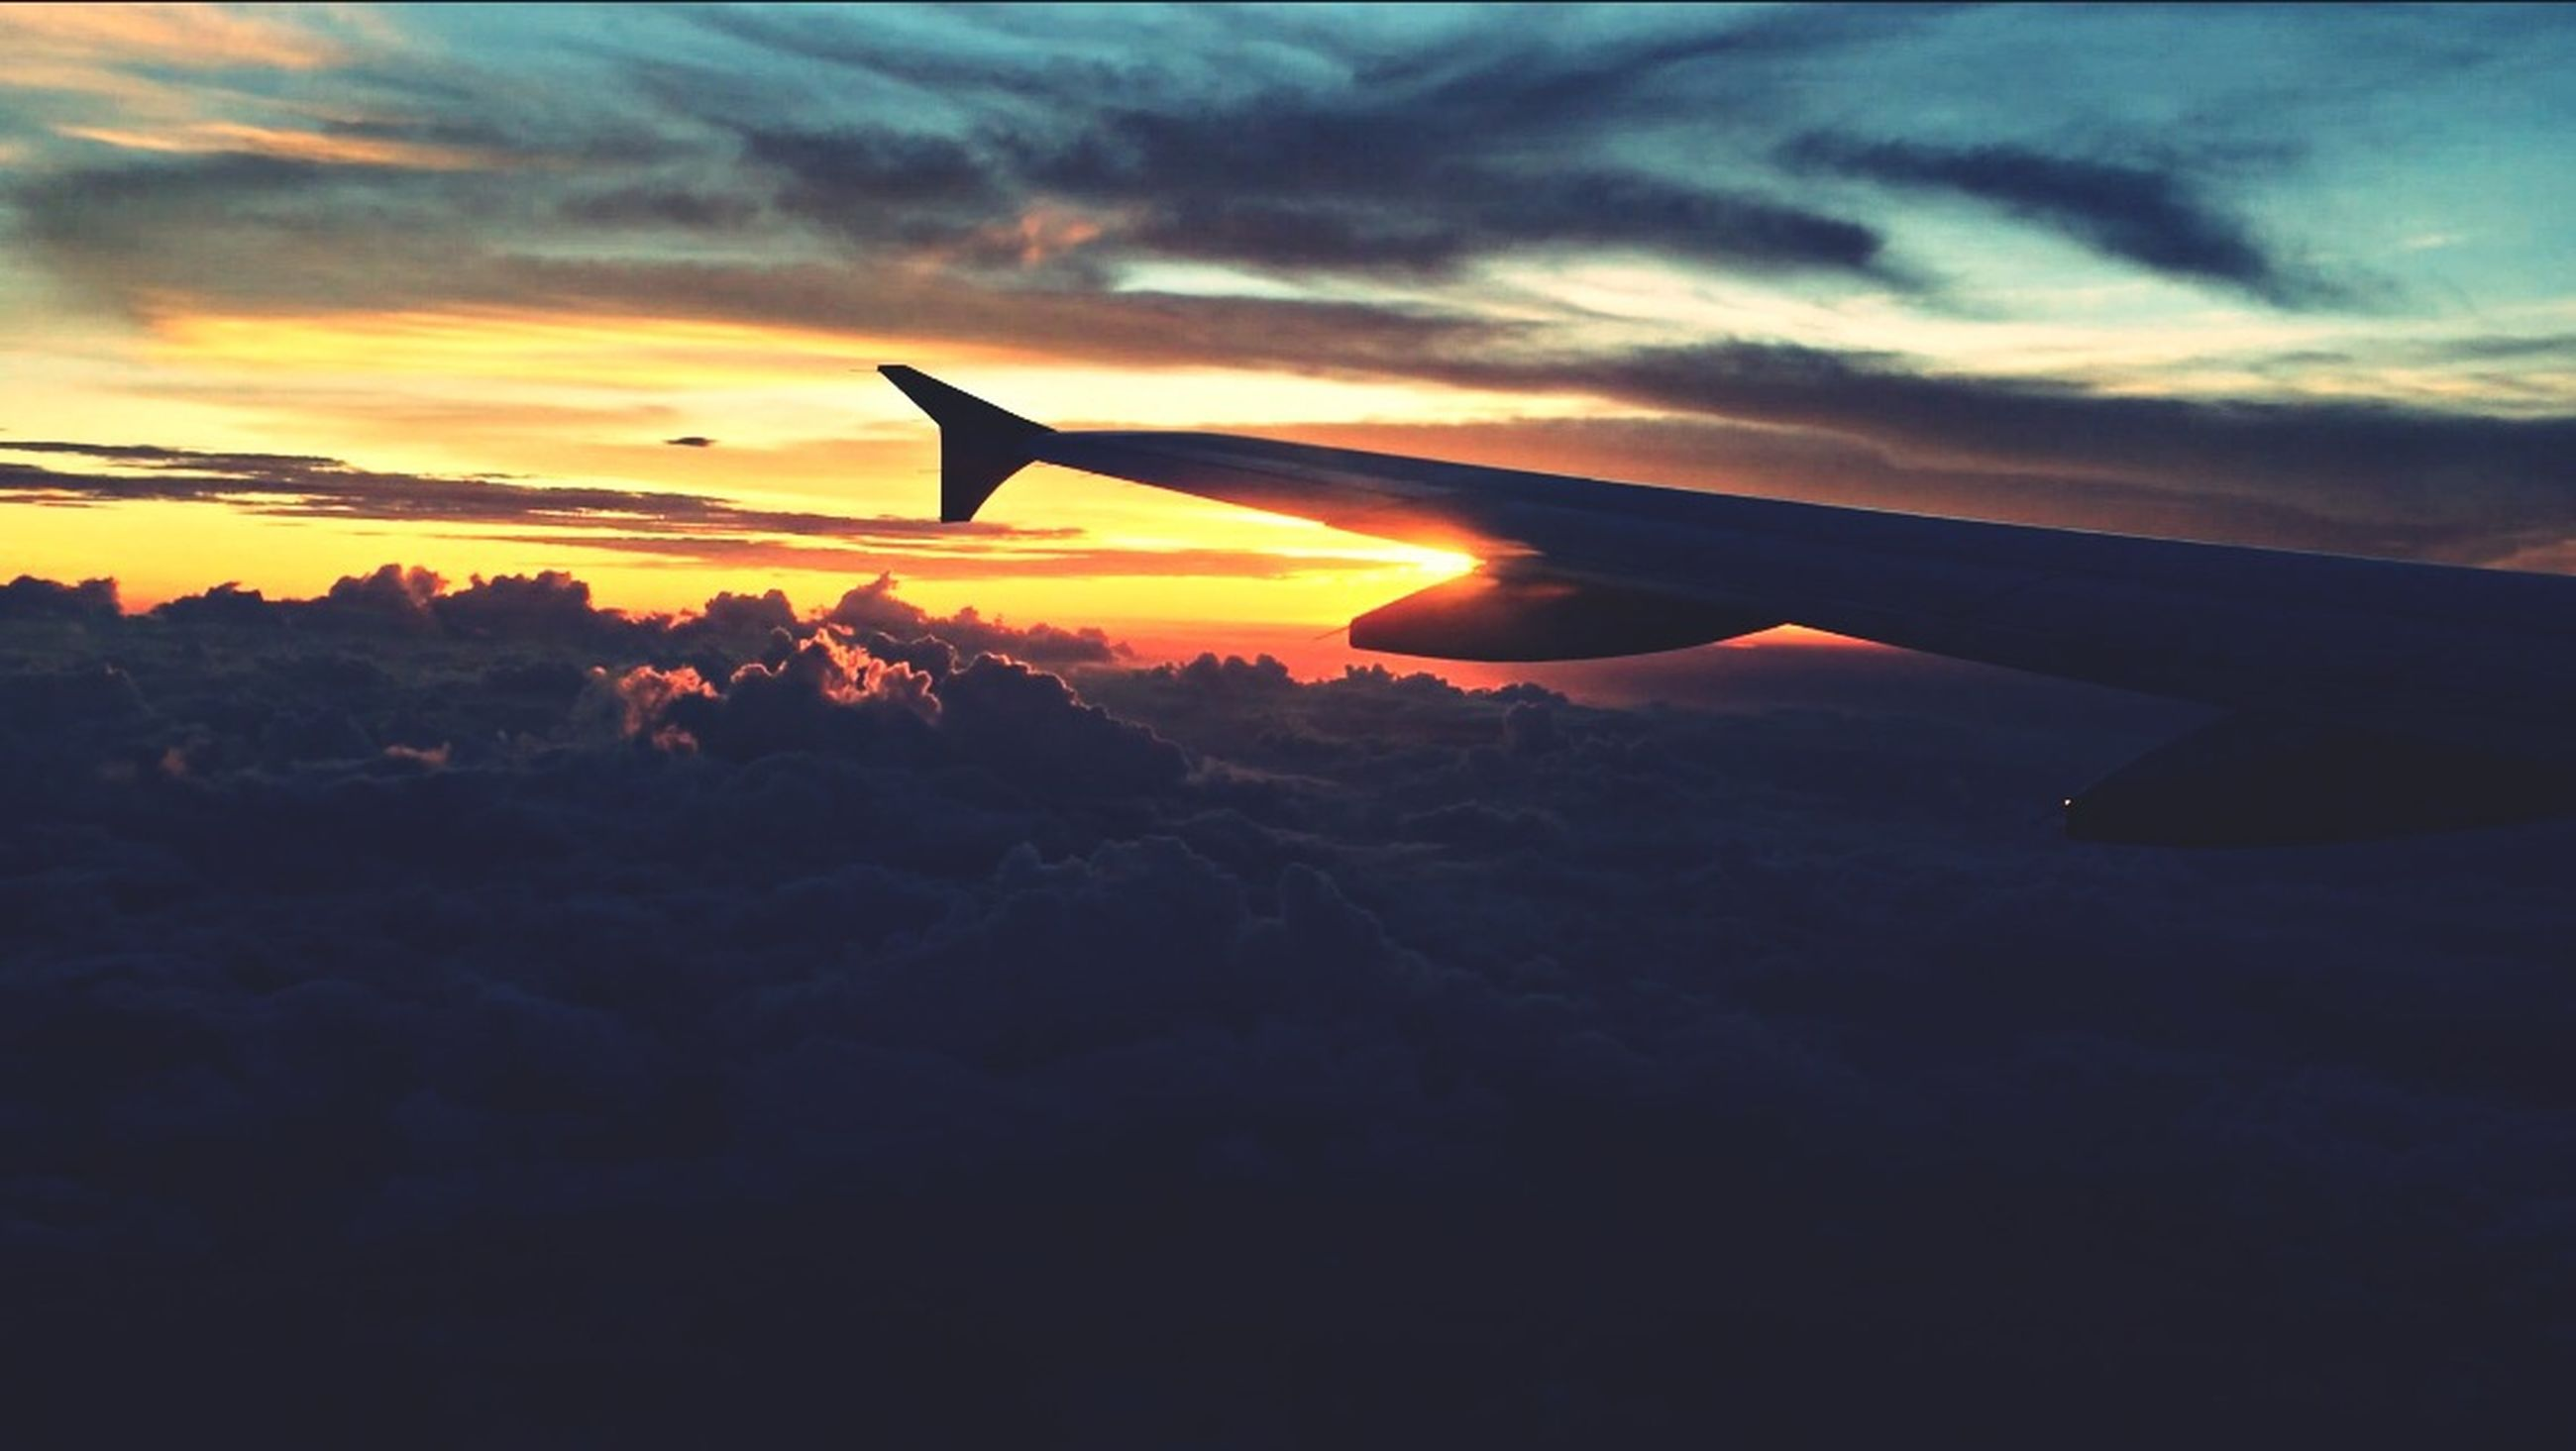 airplane, flying, air vehicle, aircraft wing, transportation, mode of transport, sunset, sky, mid-air, aerial view, part of, cloud - sky, scenics, travel, landscape, public transportation, beauty in nature, cropped, on the move, journey